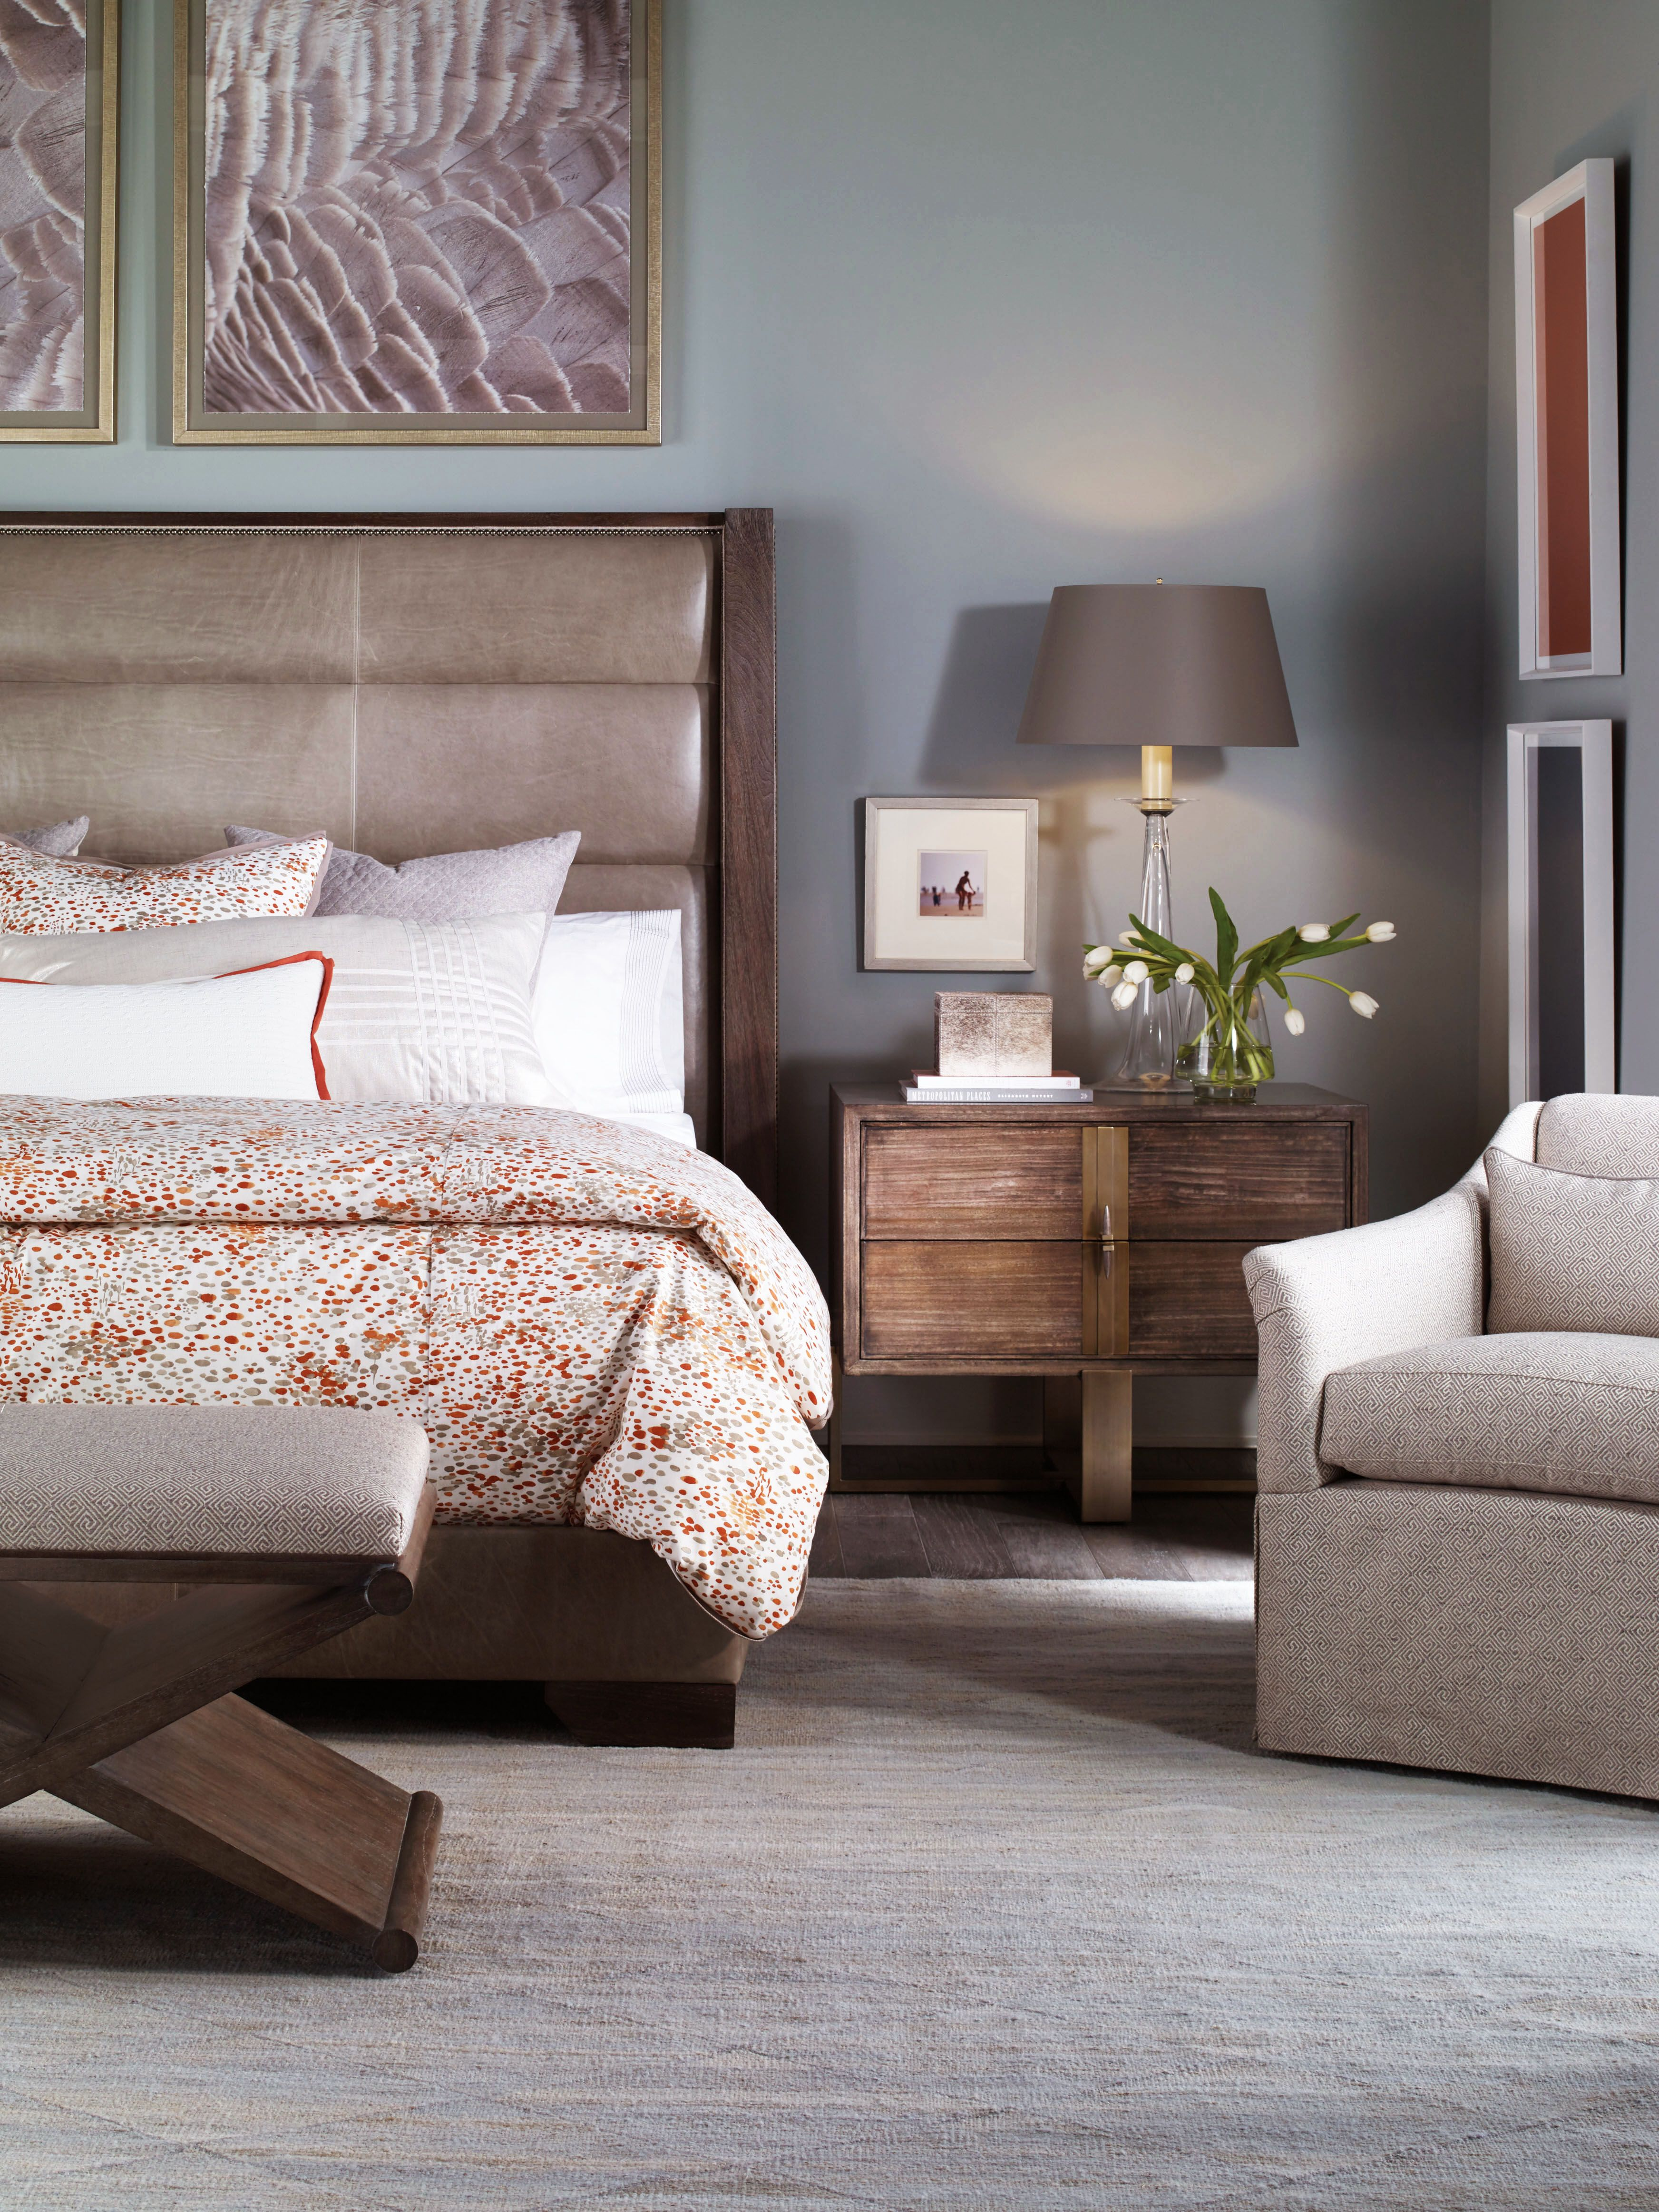 Modern bedroom setting, all furnished by Avenue Design